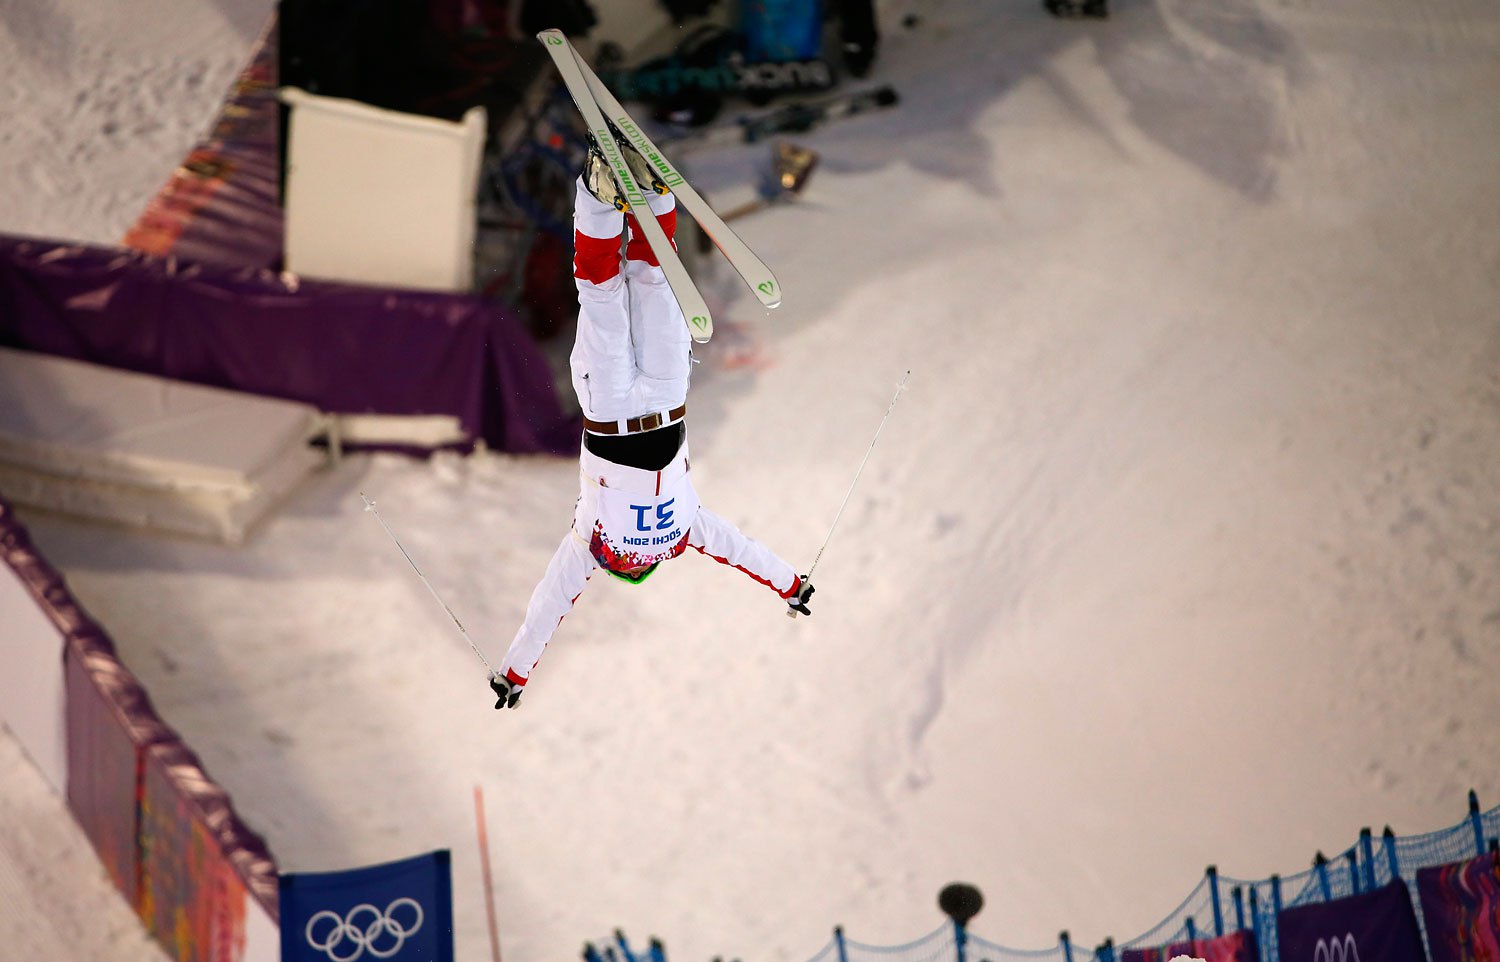 China's Qin Ning performs a jump during the women's freestyle skiing moguls qualification round in Rosa Khutor, Feb. 8, 2014.